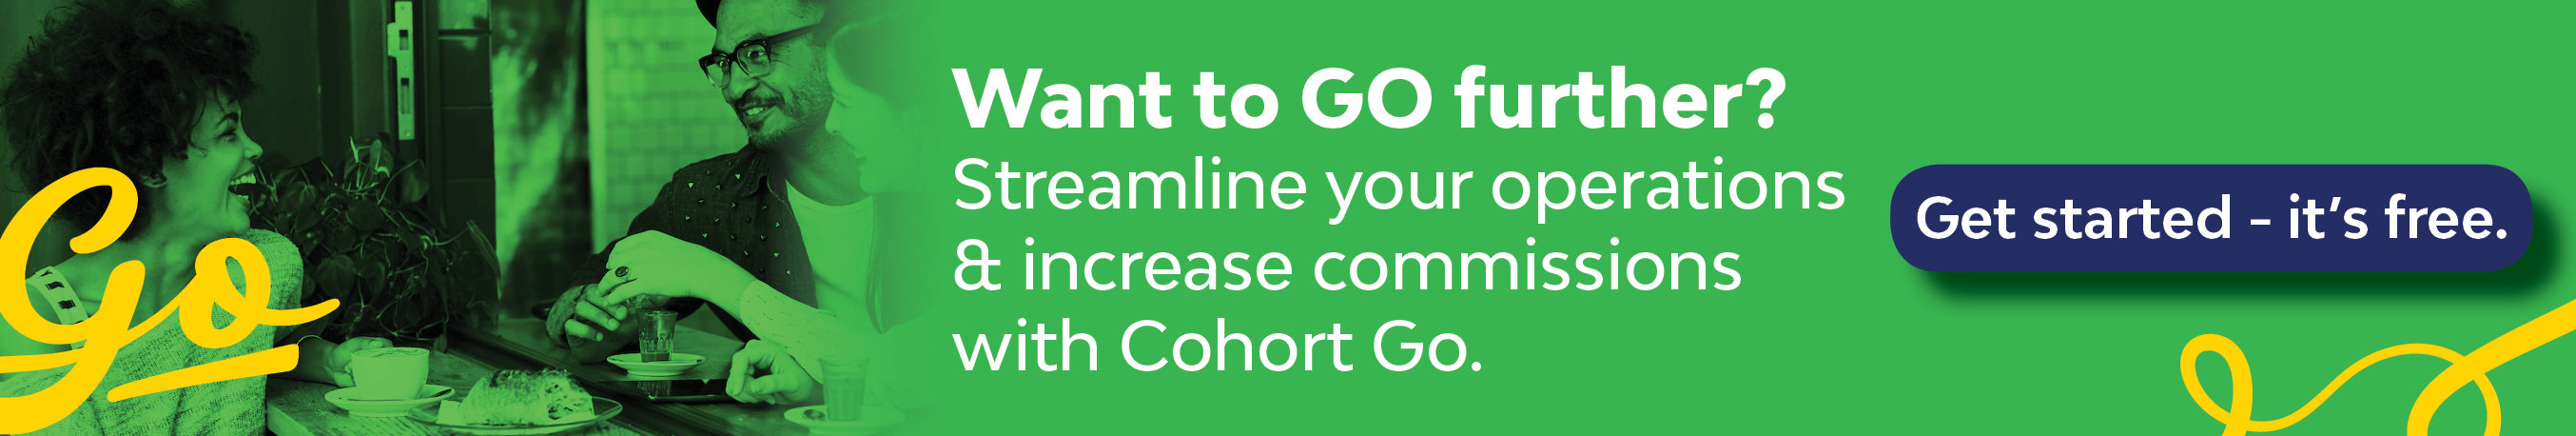 Streamline your operations and increase commissions with Cohort Go.